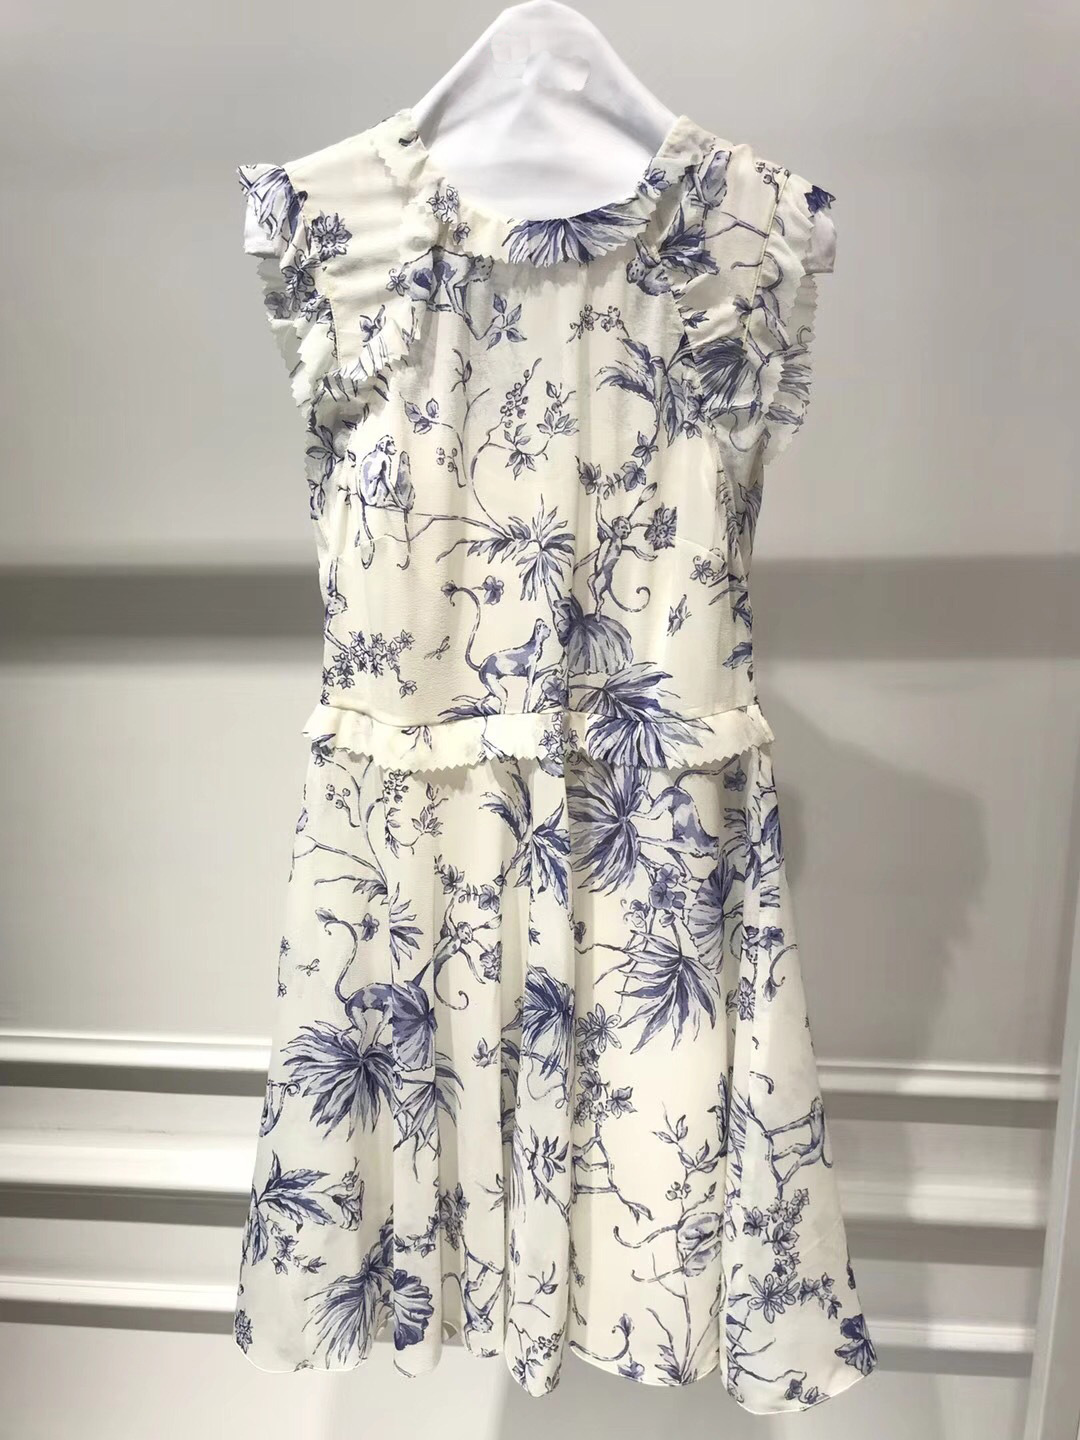 Red Summer Monkey Flowers Leaves Printing Folds Lace Dress 85076